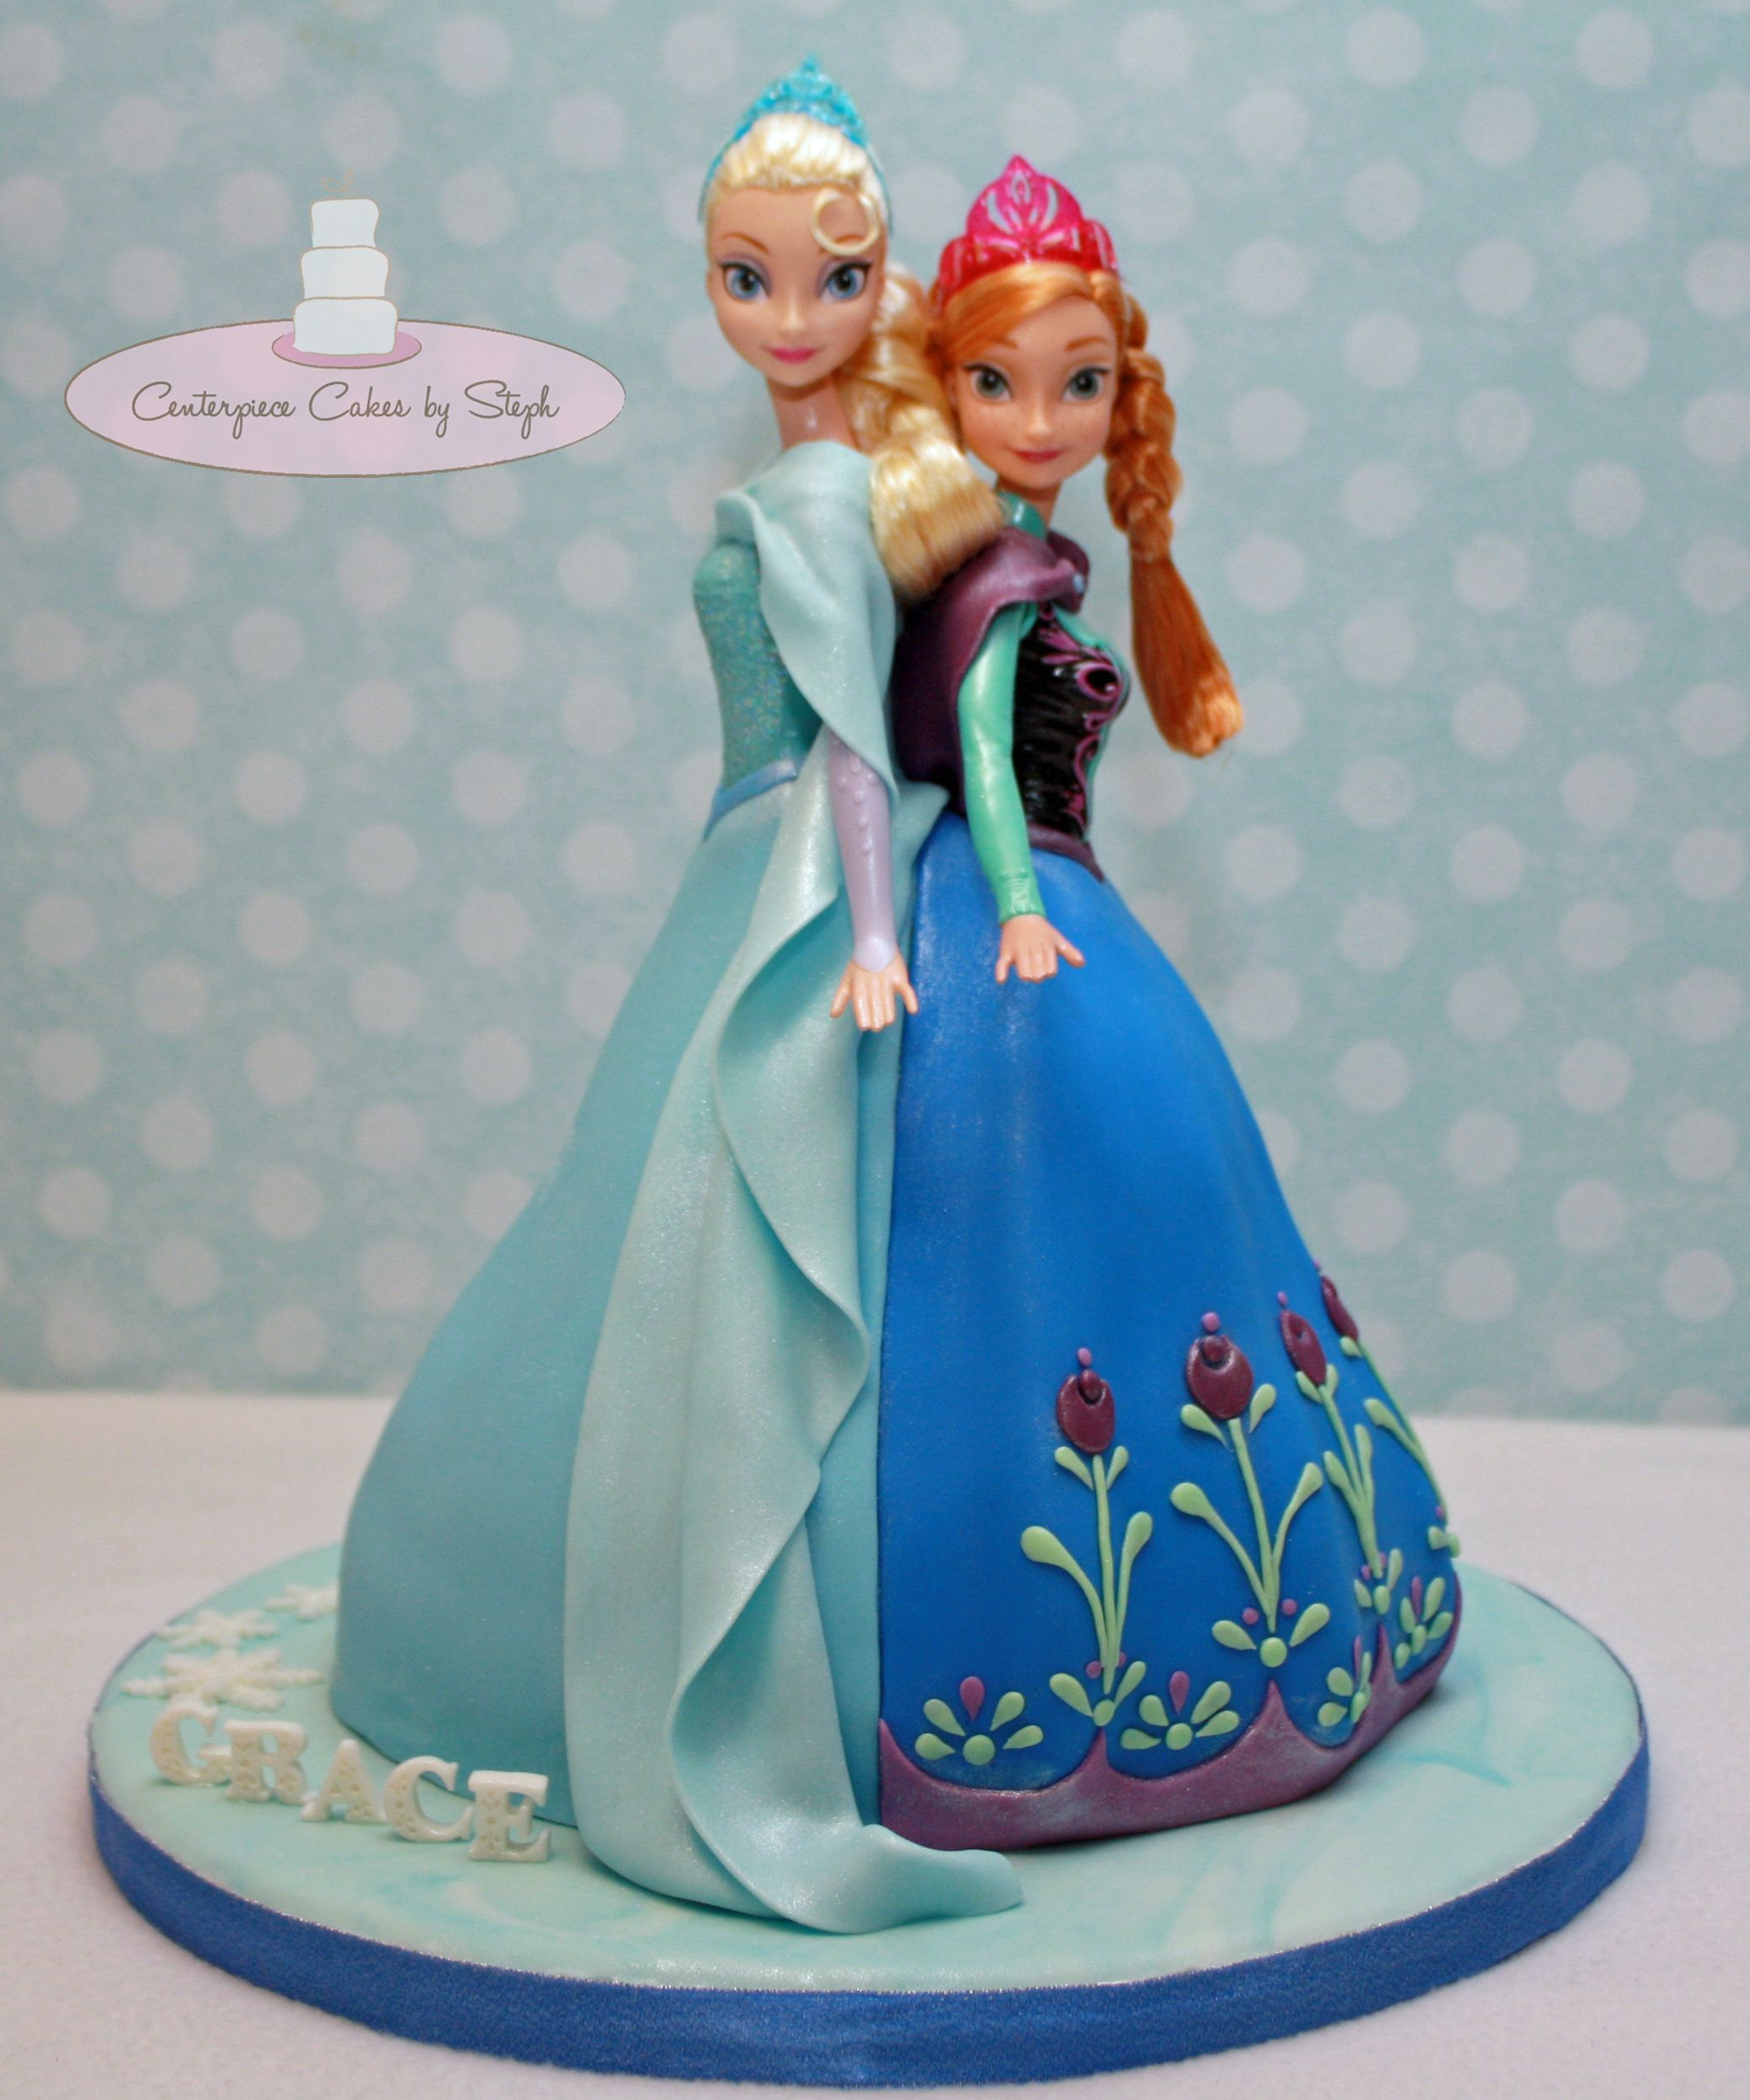 Elsa And Anna Double Doll Cake I Fell In Love With The Amazing Cup